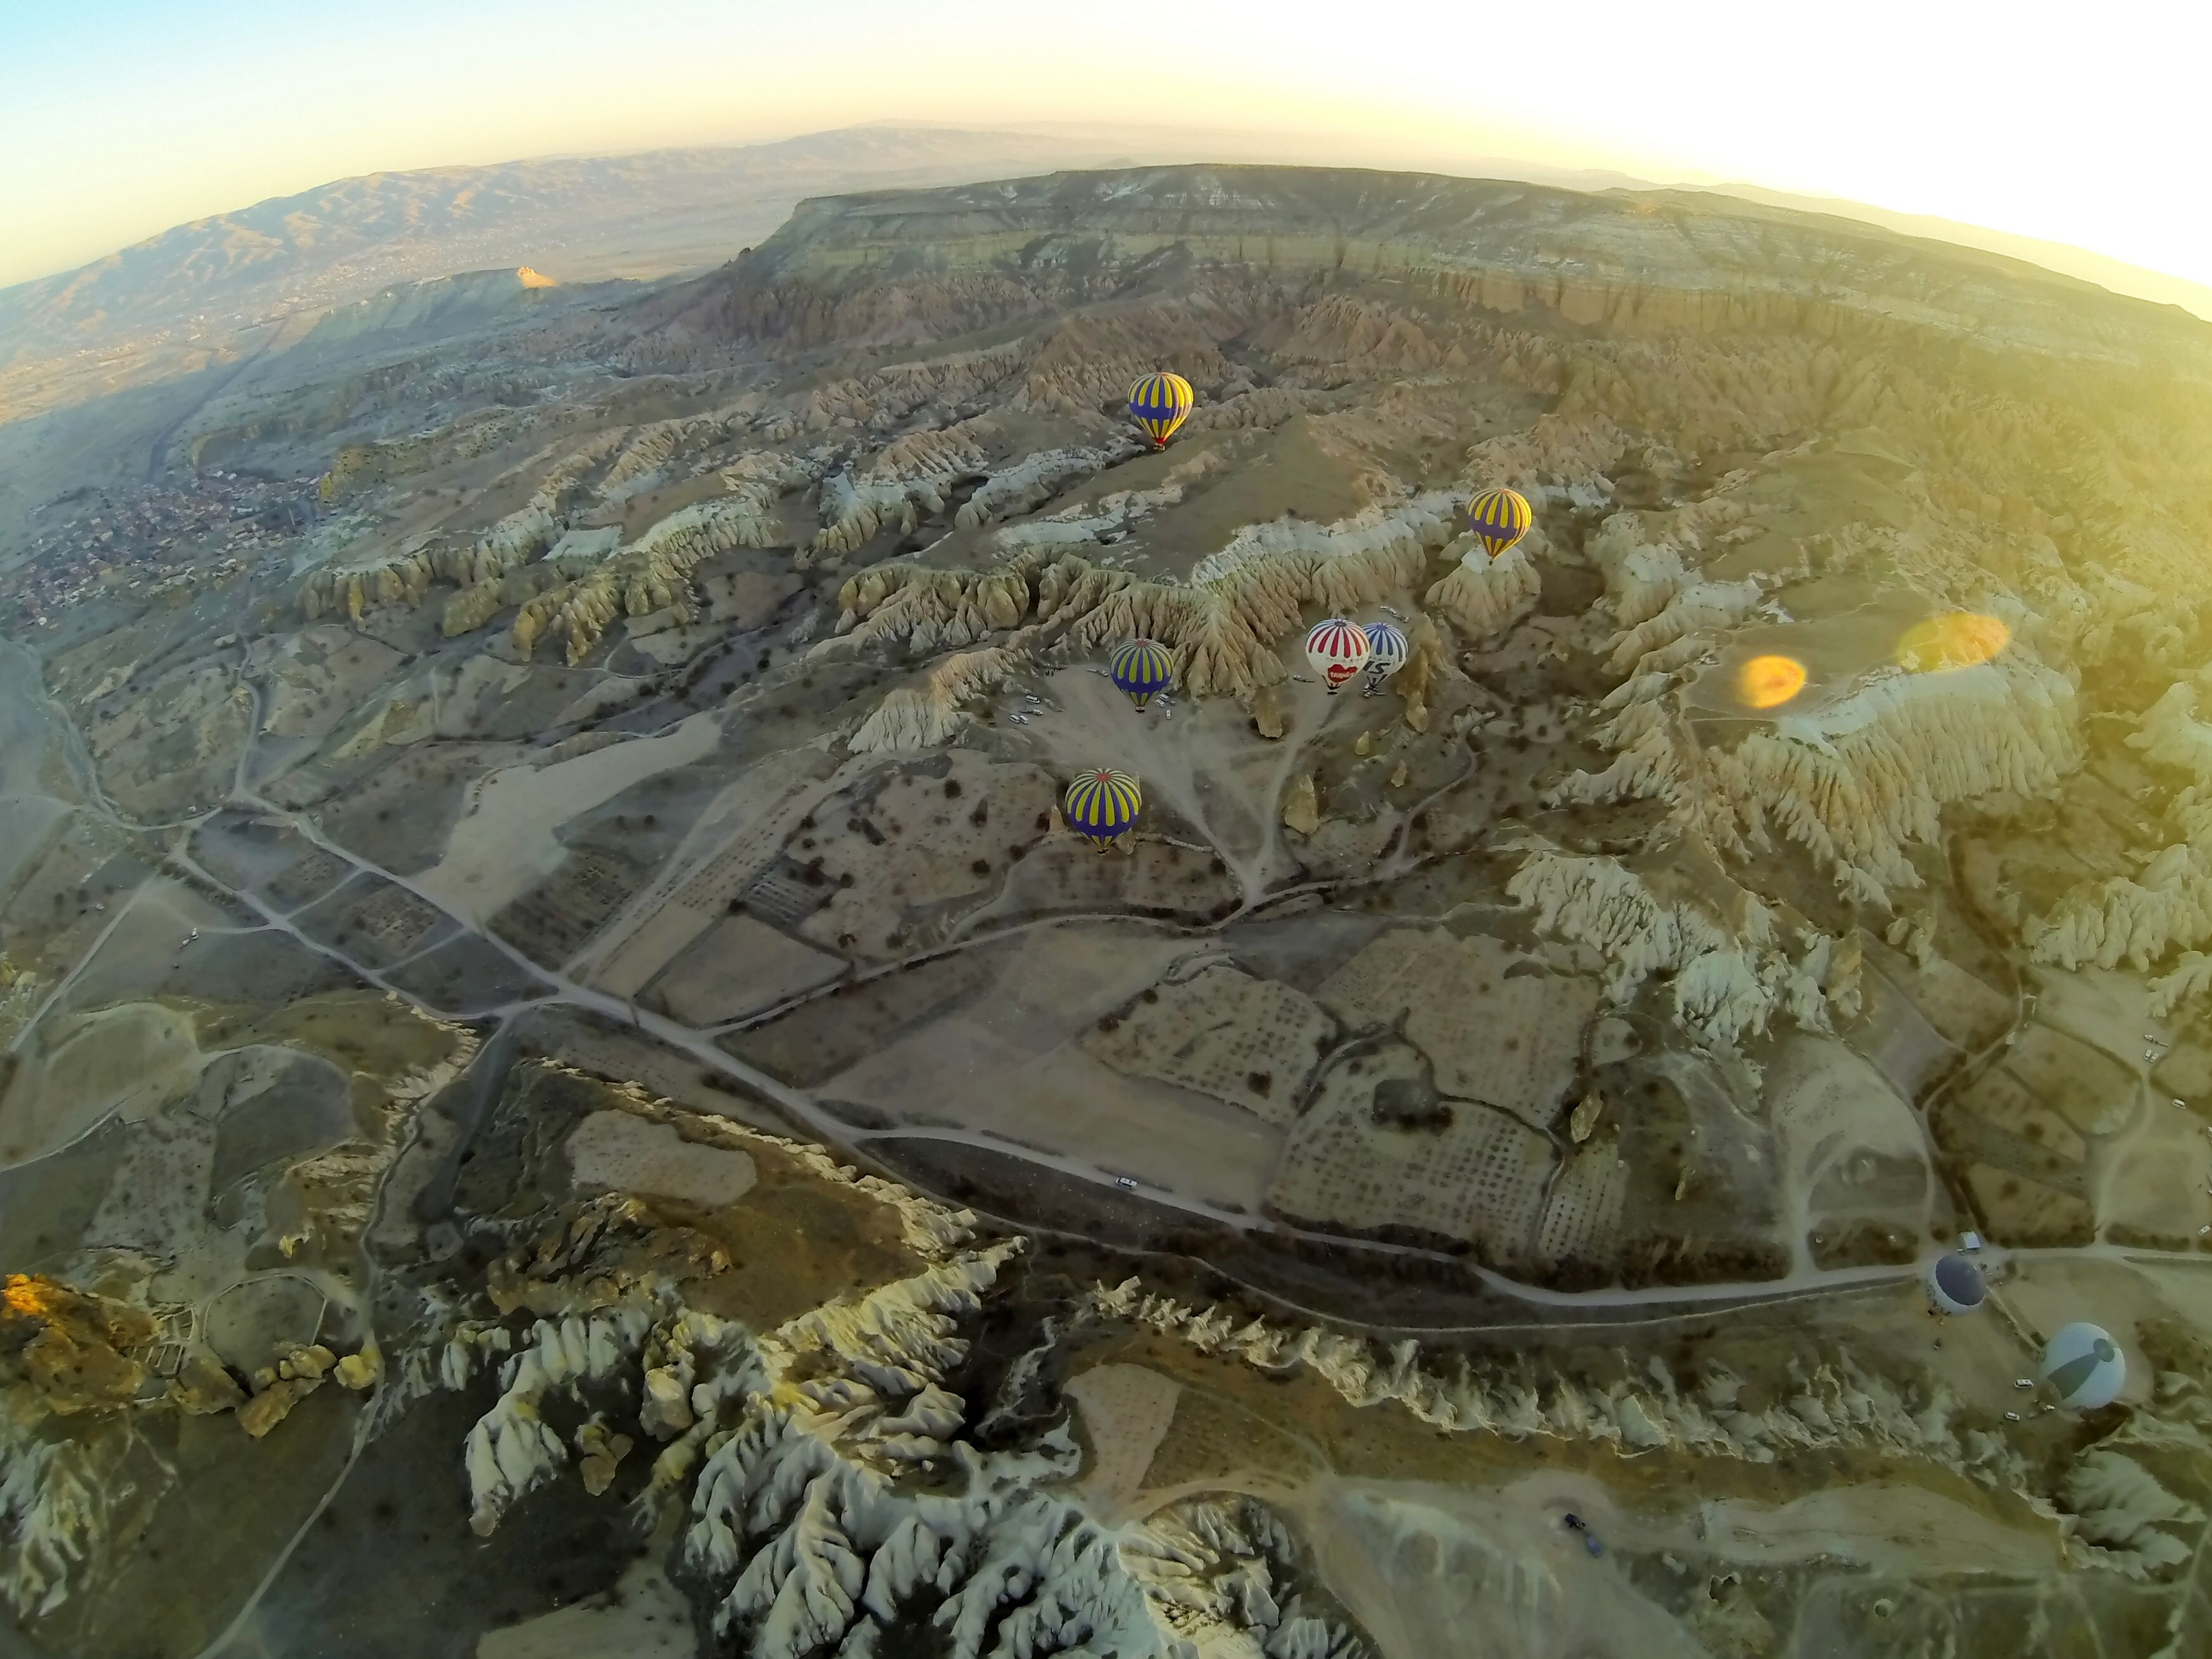 Image from https://upload.wikimedia.org/wikipedia/commons/a/a0/Aerial_view_of_Cappadocia_from_hot_air_balloon_9279_Compressor_rot3.jpg.